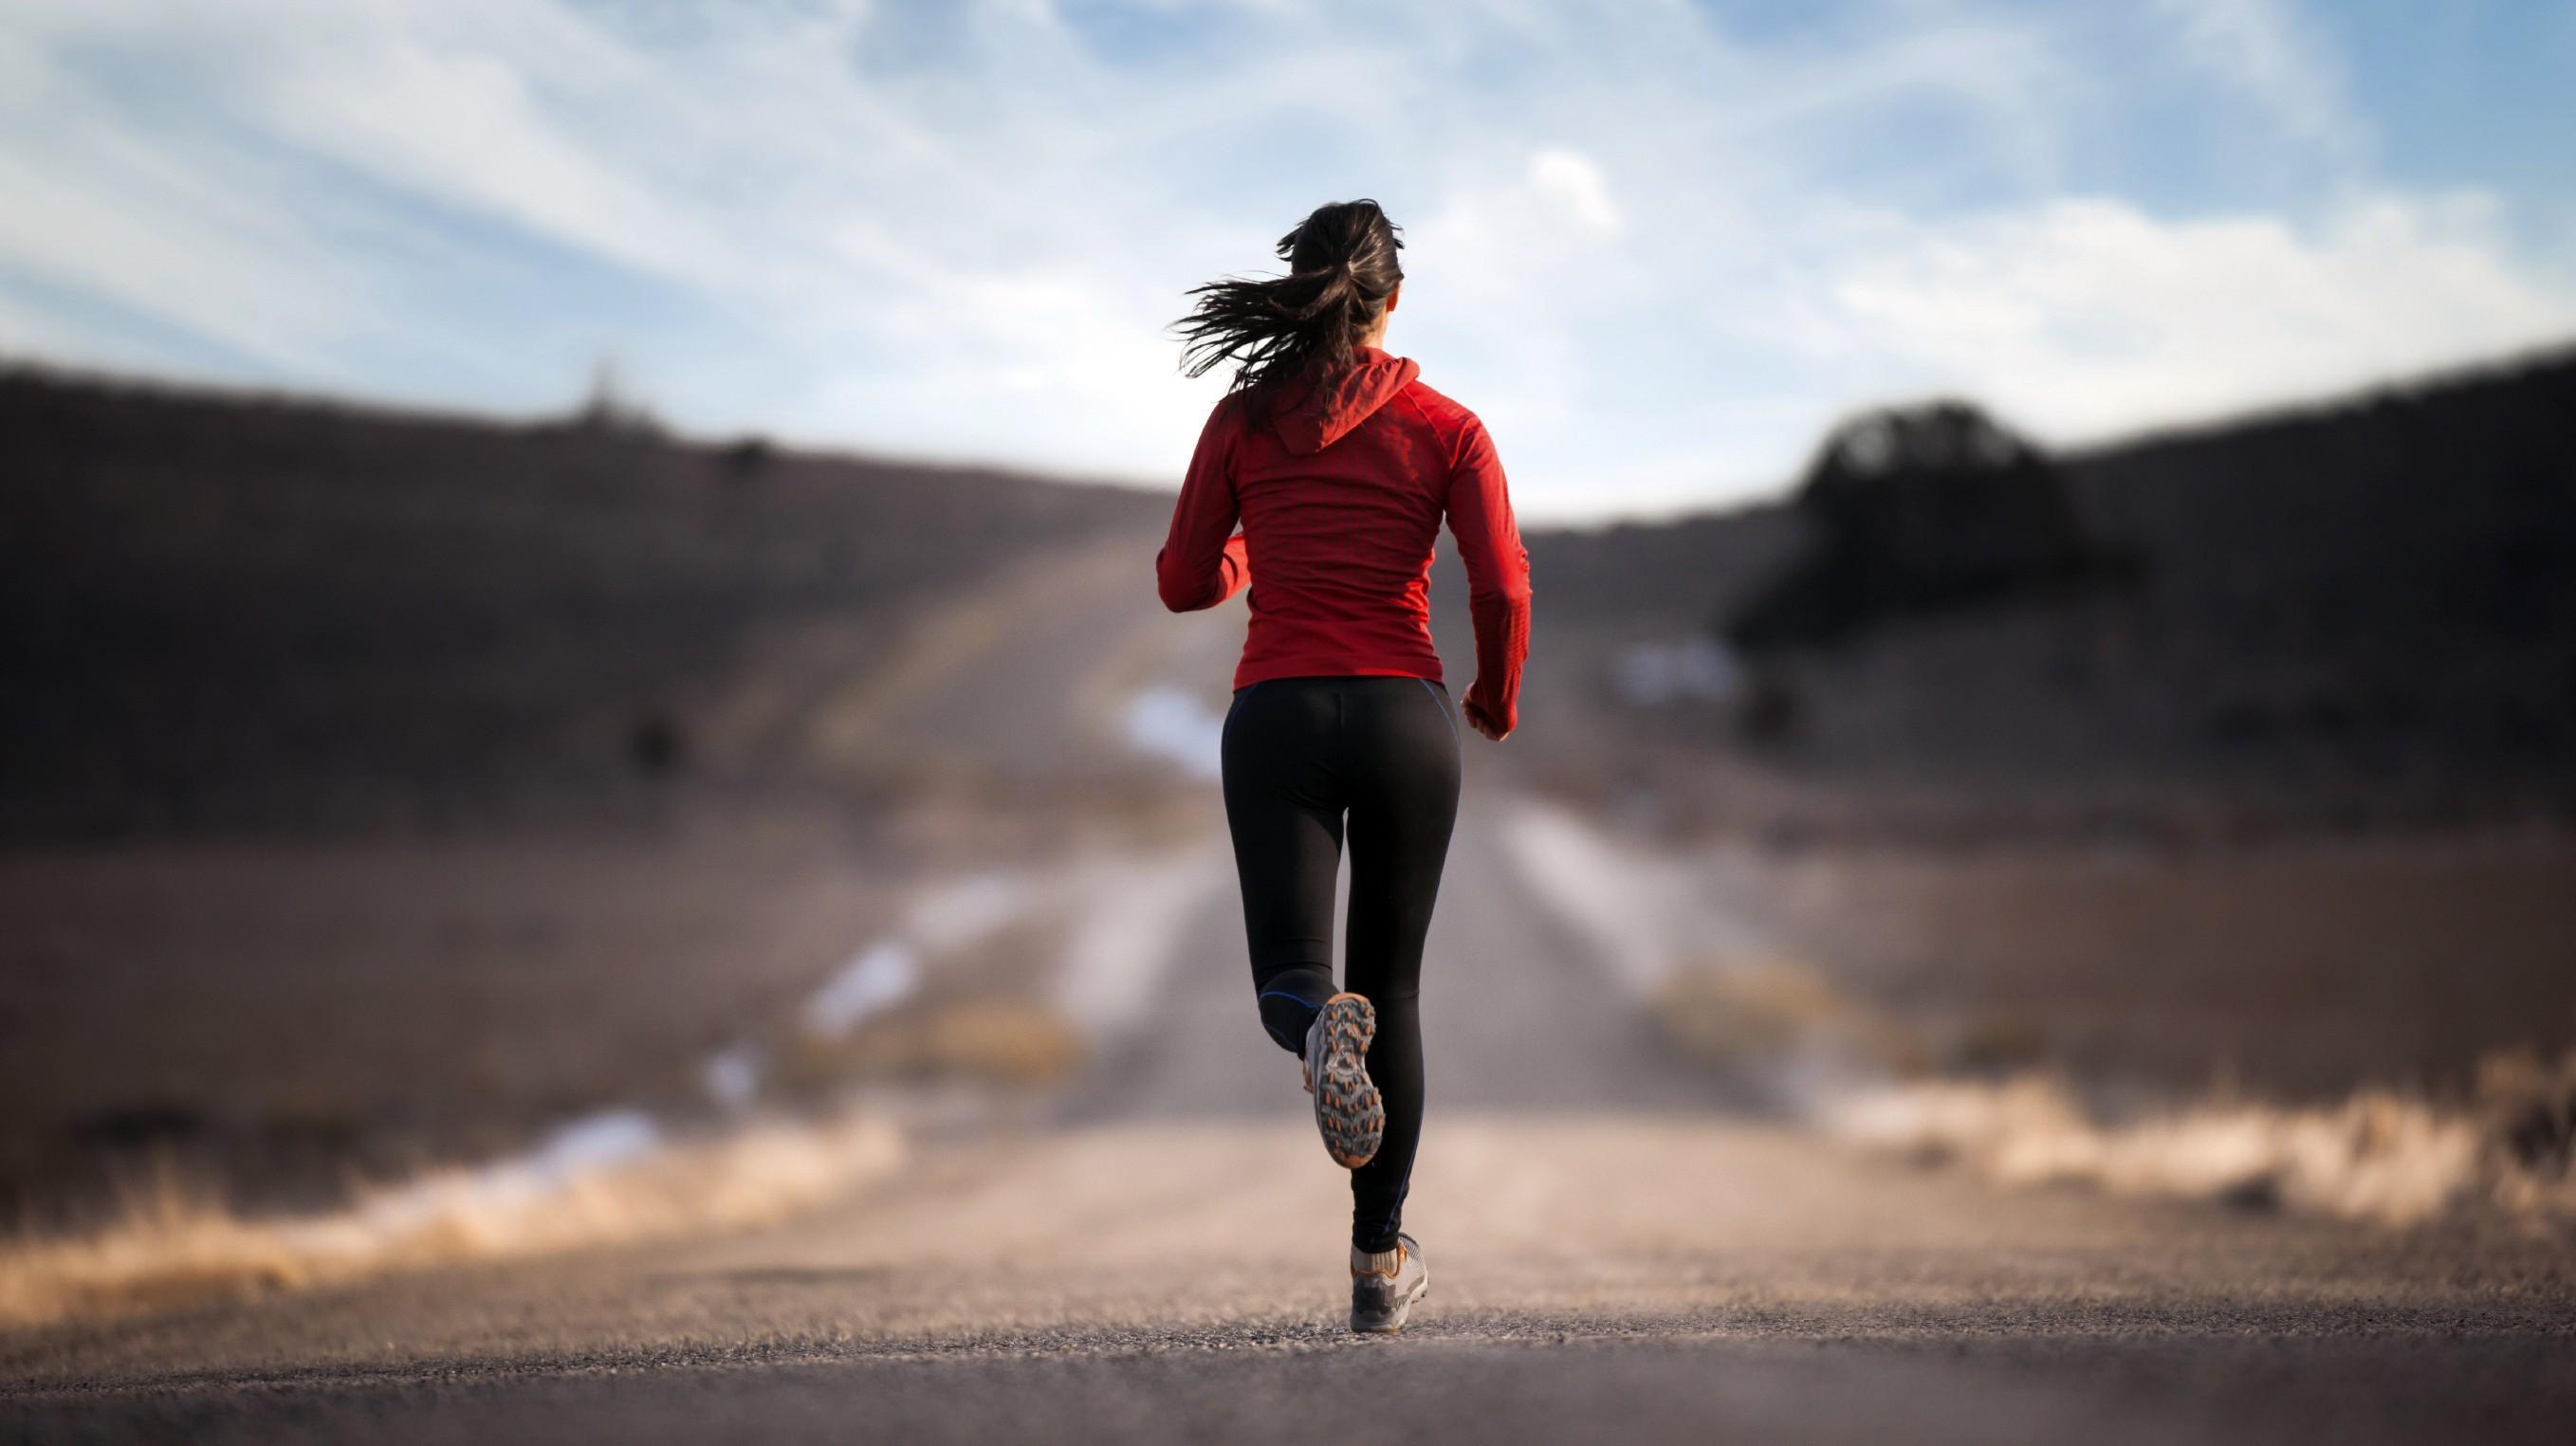 Here are some reasons that running is actually good for you.